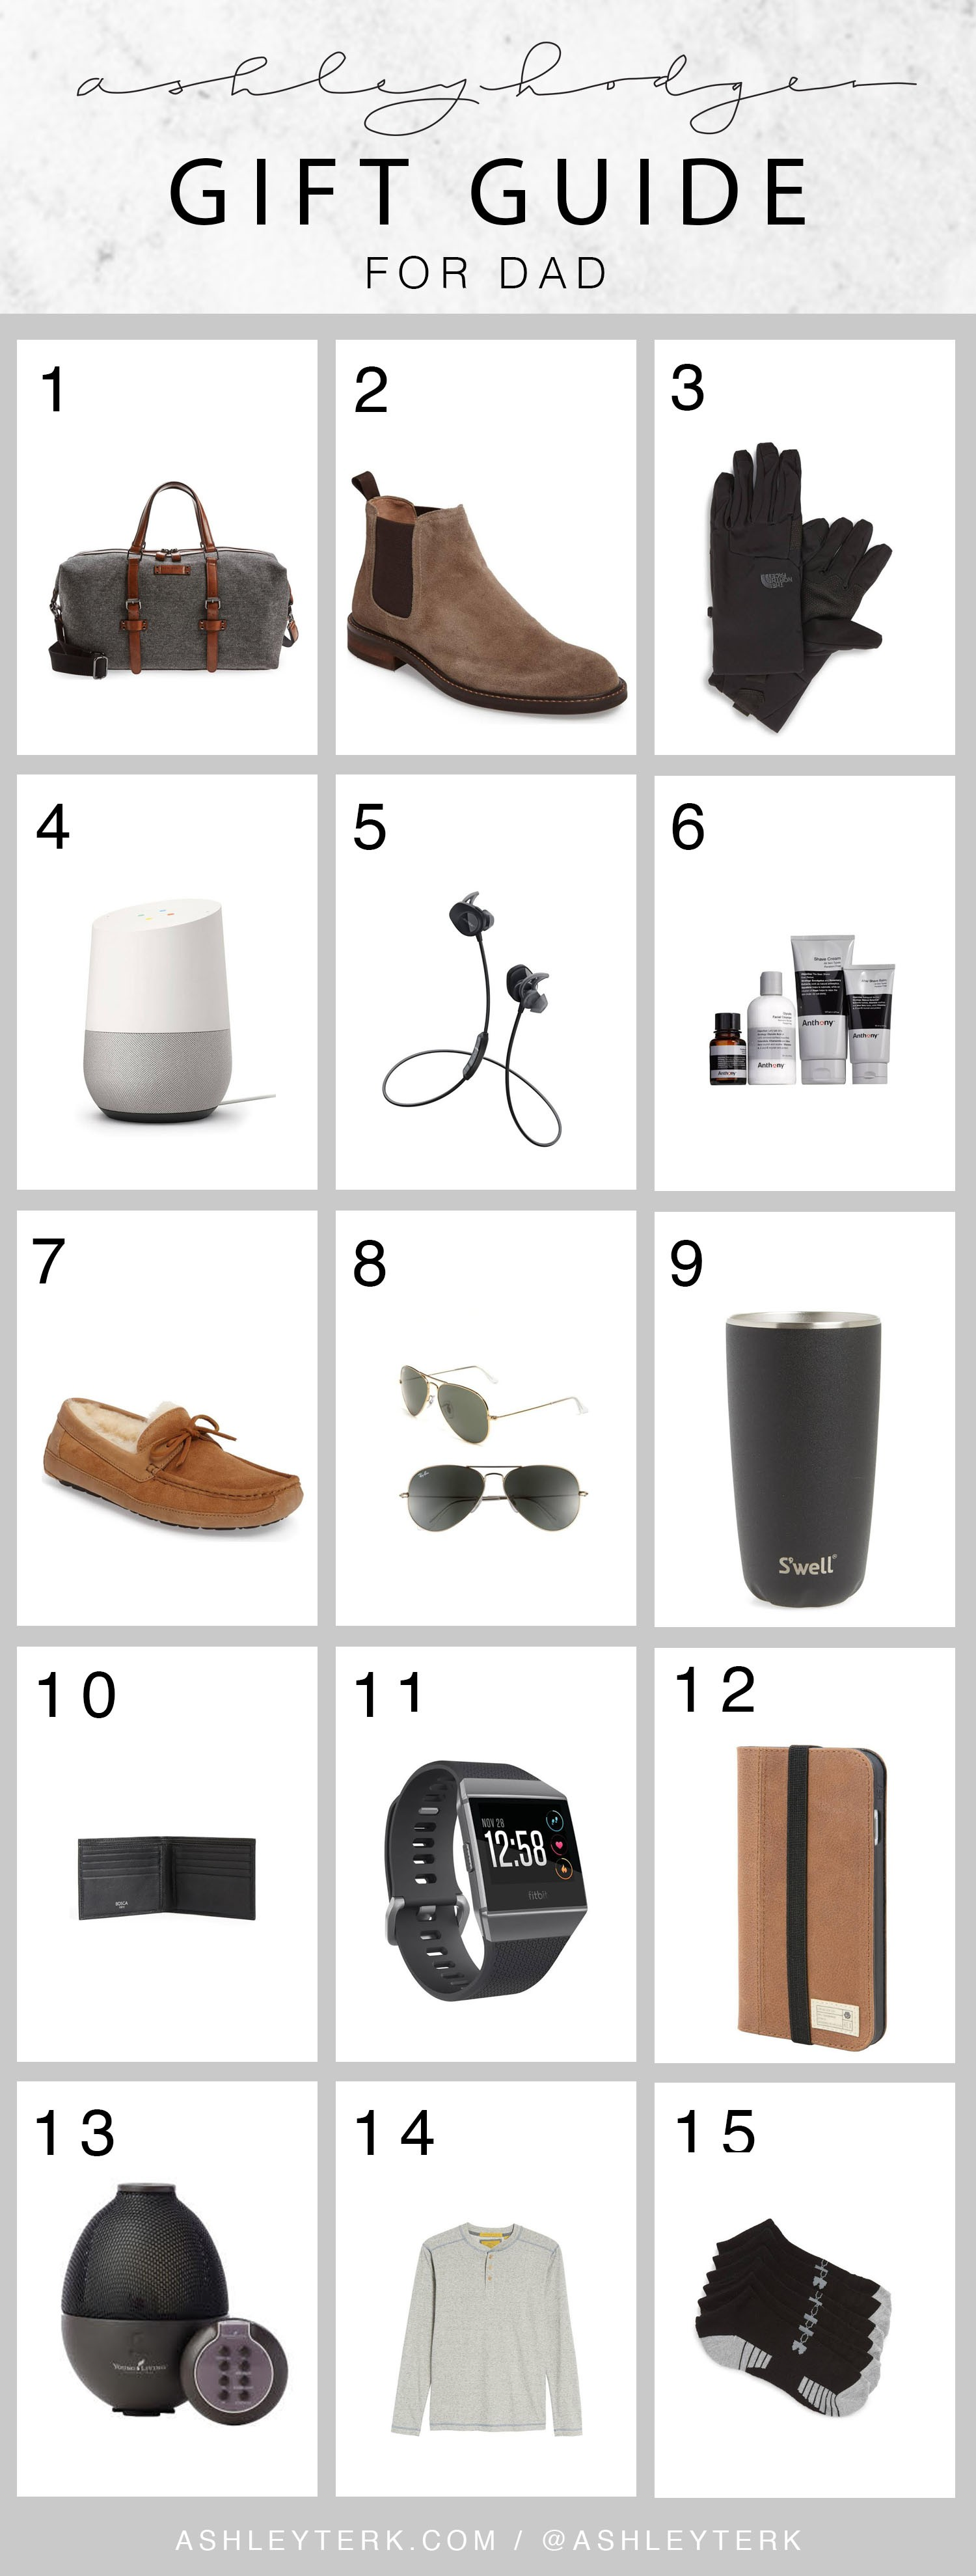 Christmas Gift Guide: For Dad | Ashley Hodges